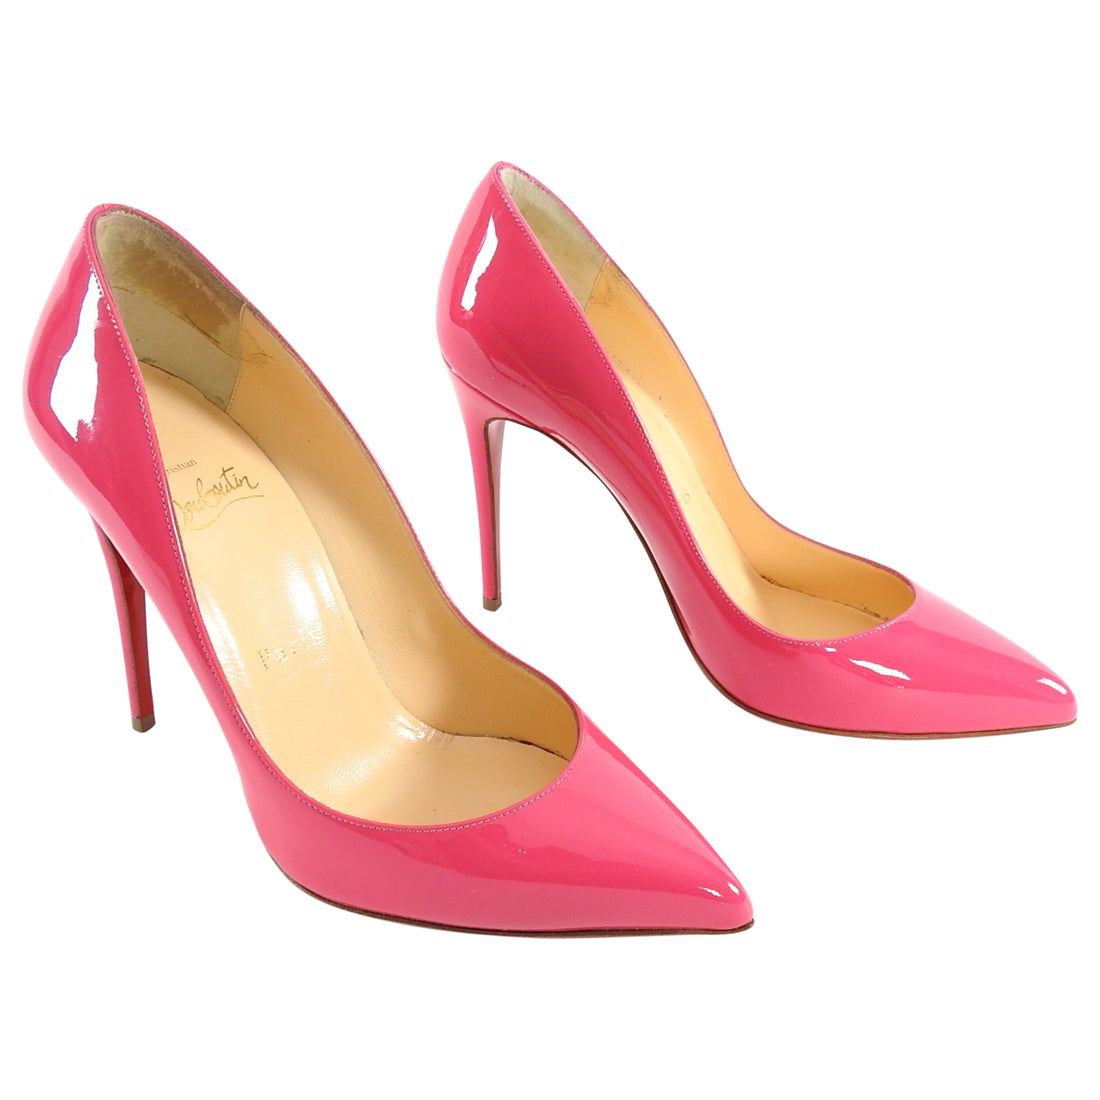 Christian Louboutin Pinky Patent Pigalle Follies 100 Pumps - 36